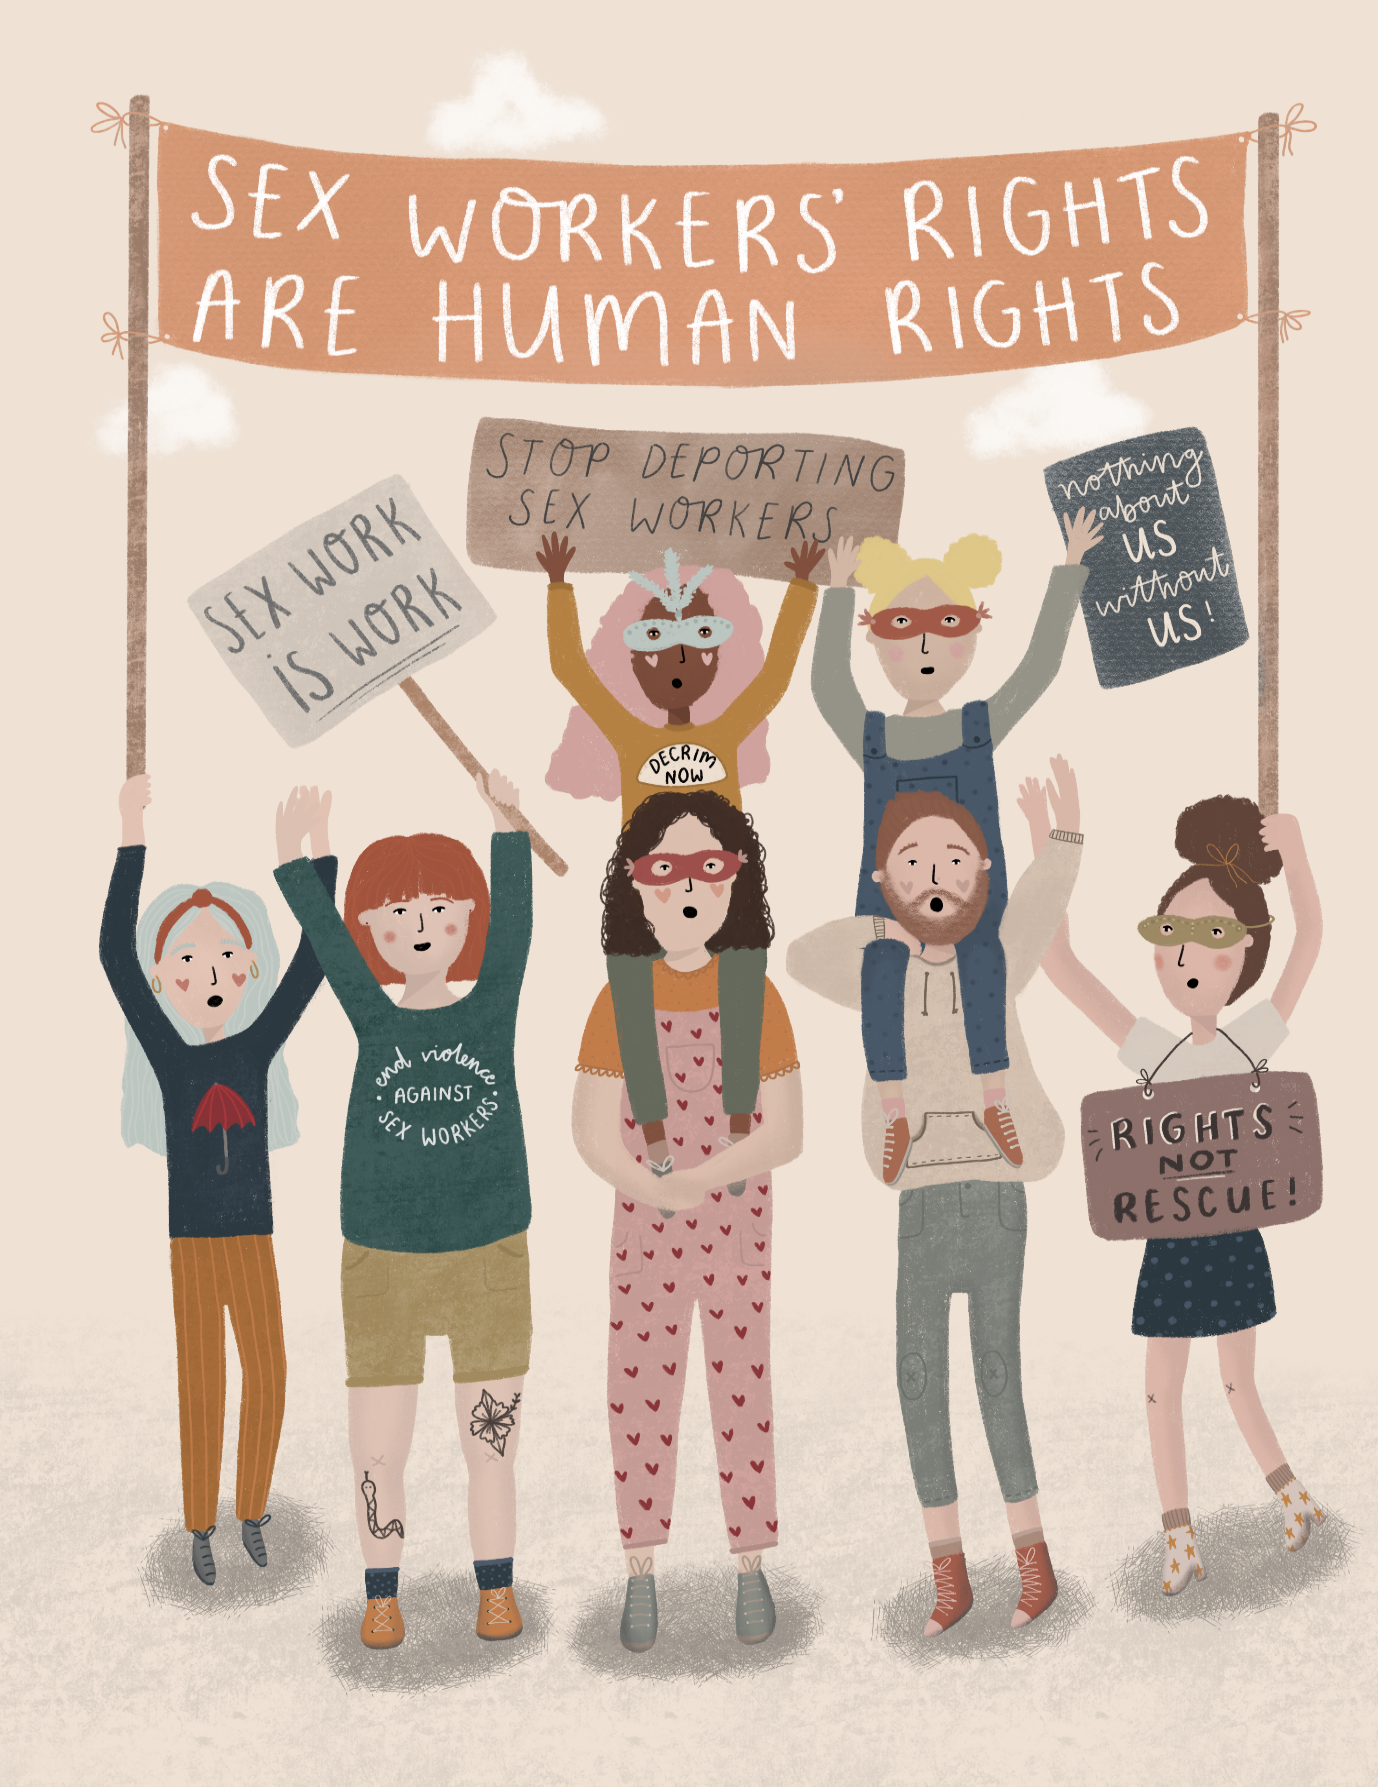 Sex workers rights protest illustration